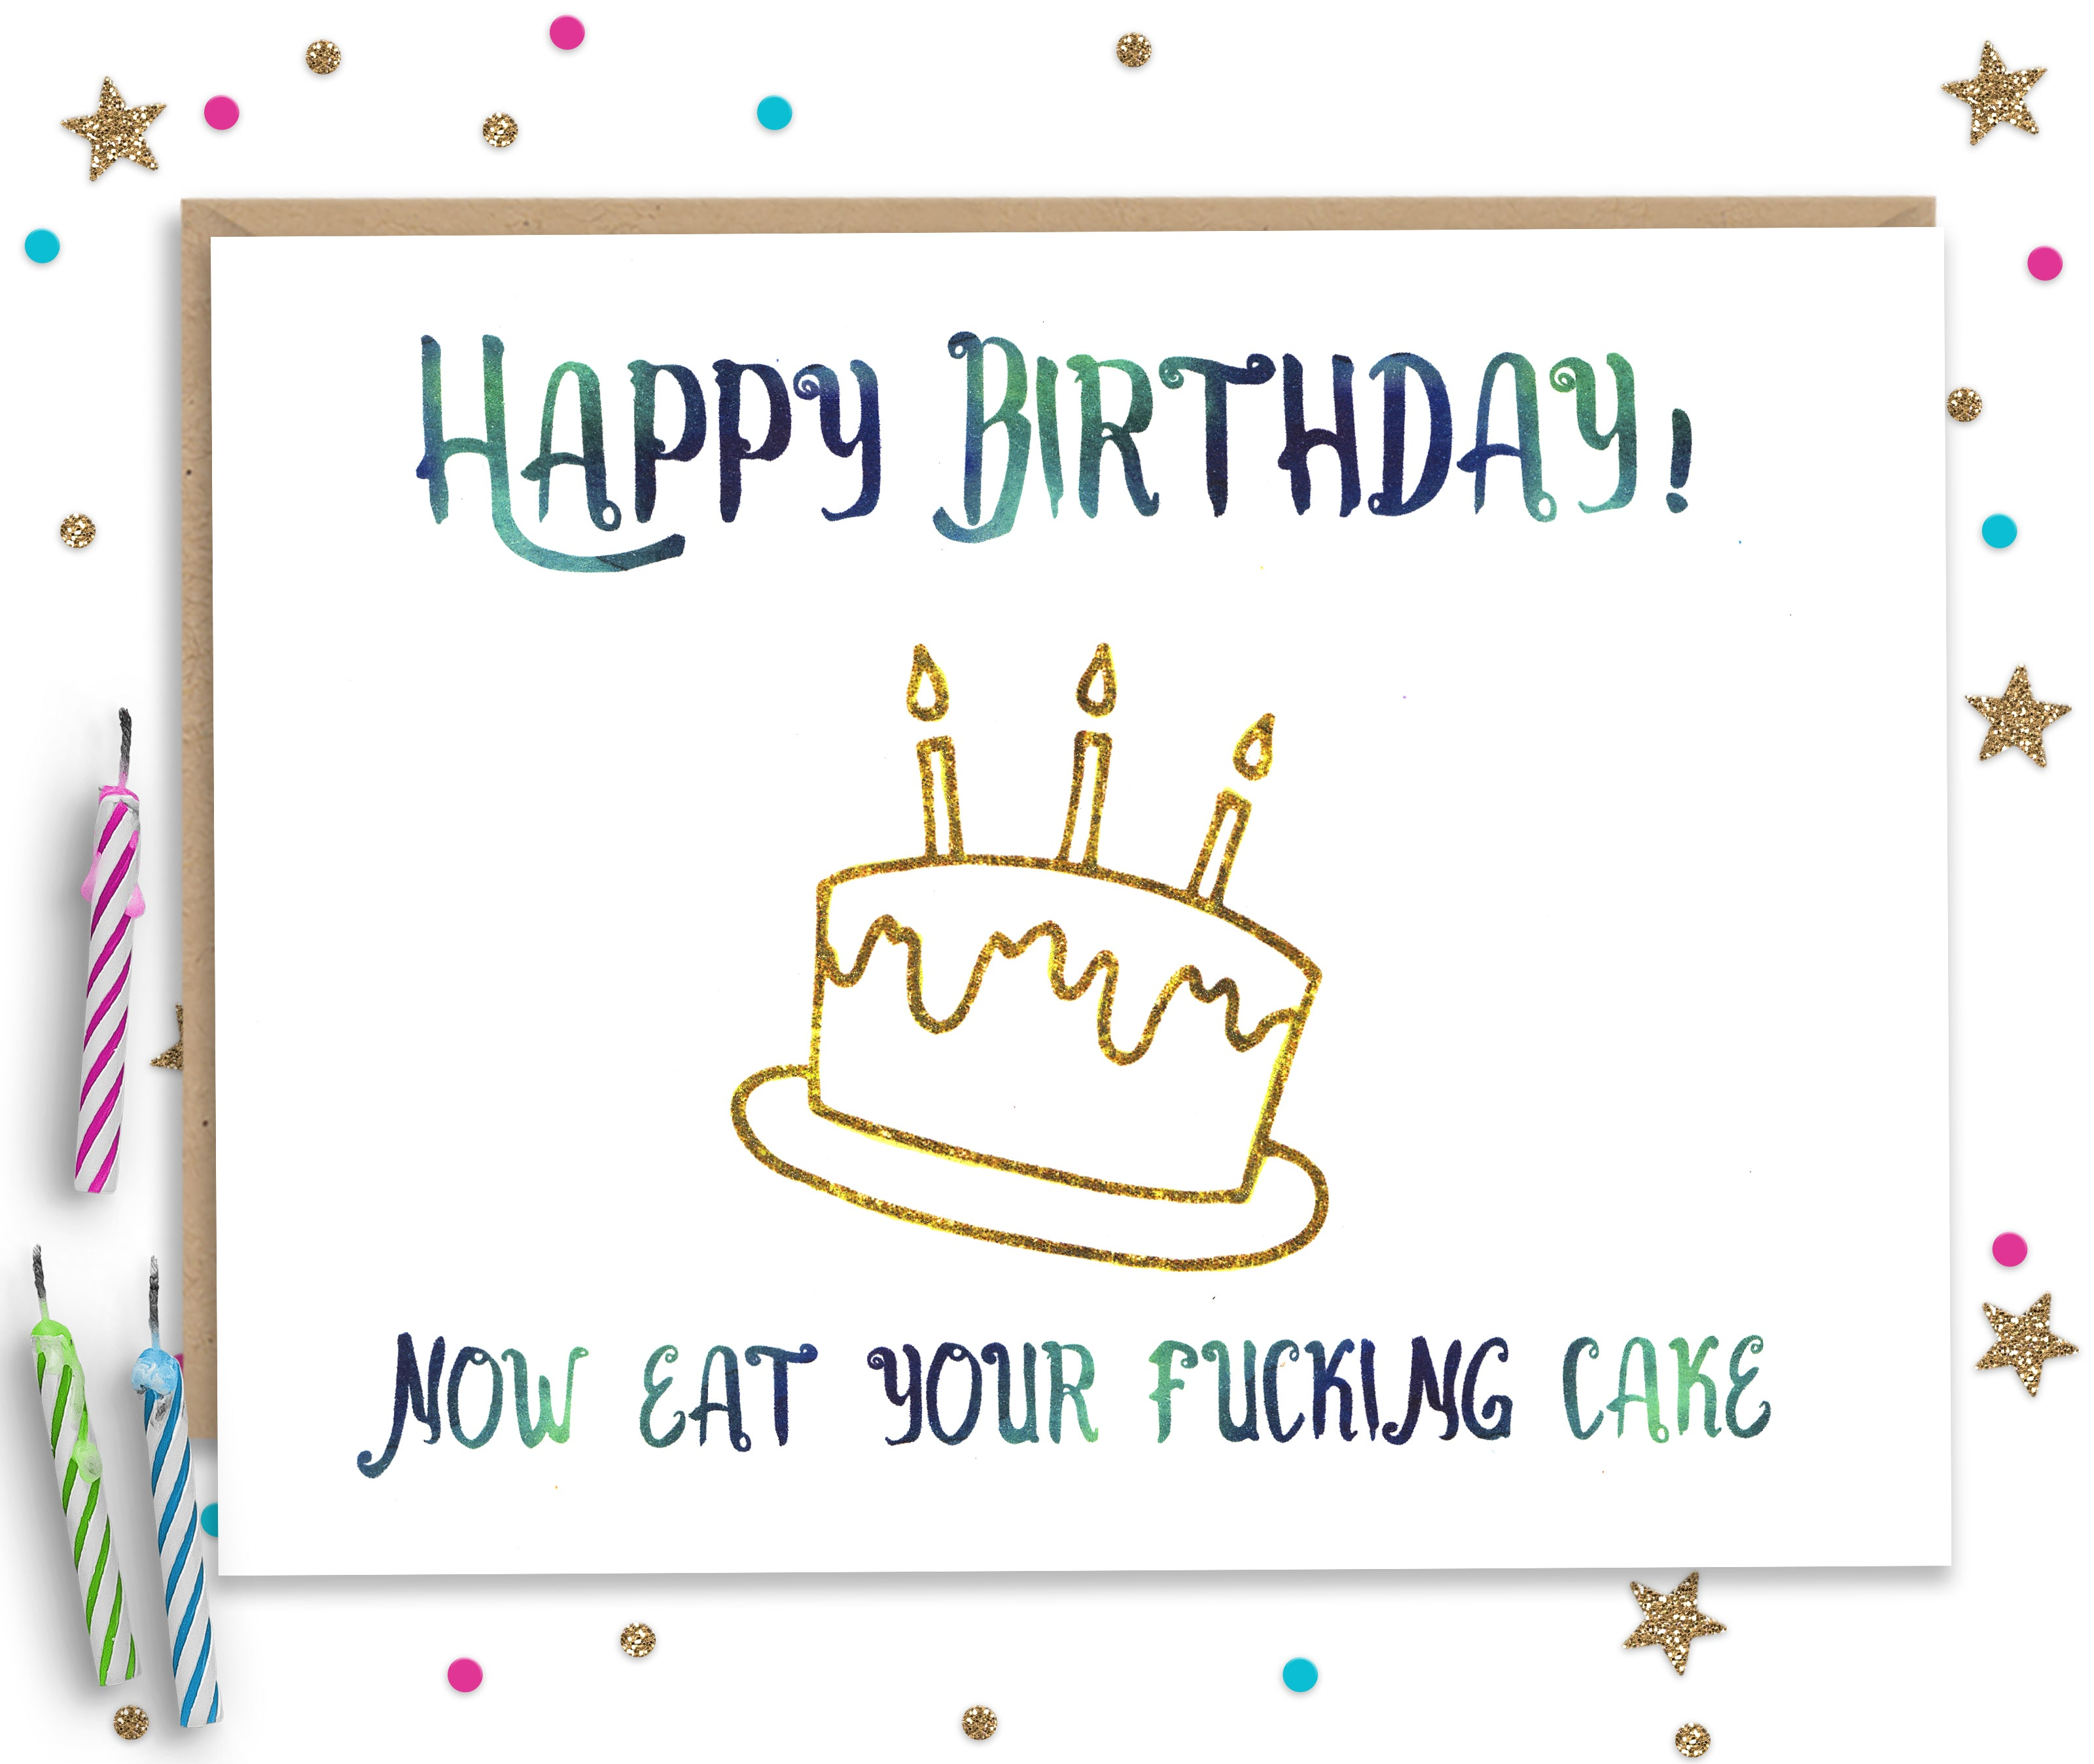 Awe Inspiring Eat Your Fucking Cake Funny Birthday Card Fourletterwordcards Funny Birthday Cards Online Fluifree Goldxyz